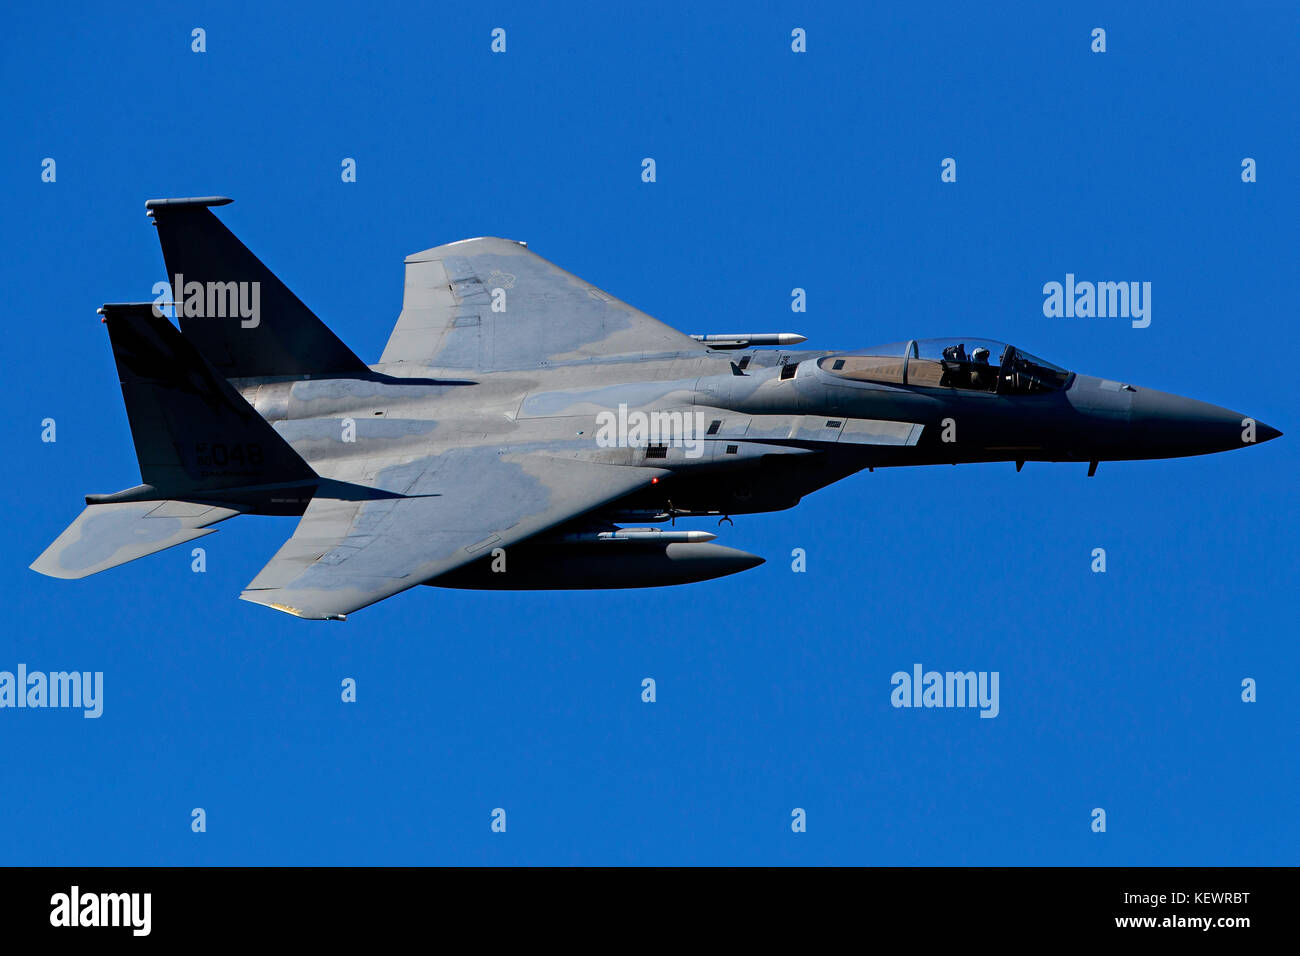 United States Air Force McDonnell-Douglas F-15C Eagle (80-048) from the 144th Fighter Wing, California Air National - Stock Image